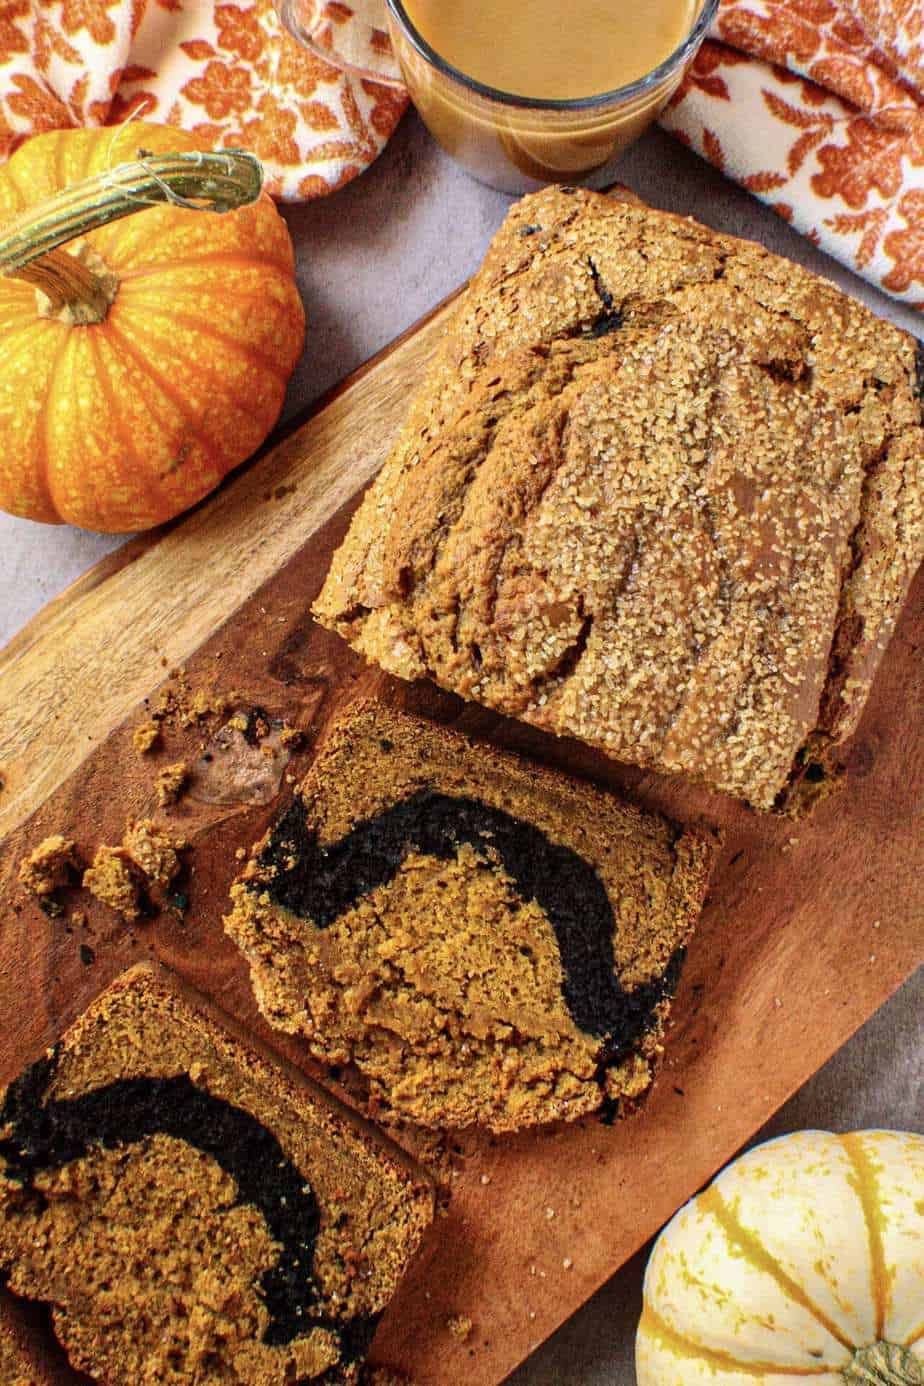 overhead shot of chocolate marble pumpkin bread on wooden board with orange floral towel and pumpkins in shot perimeter